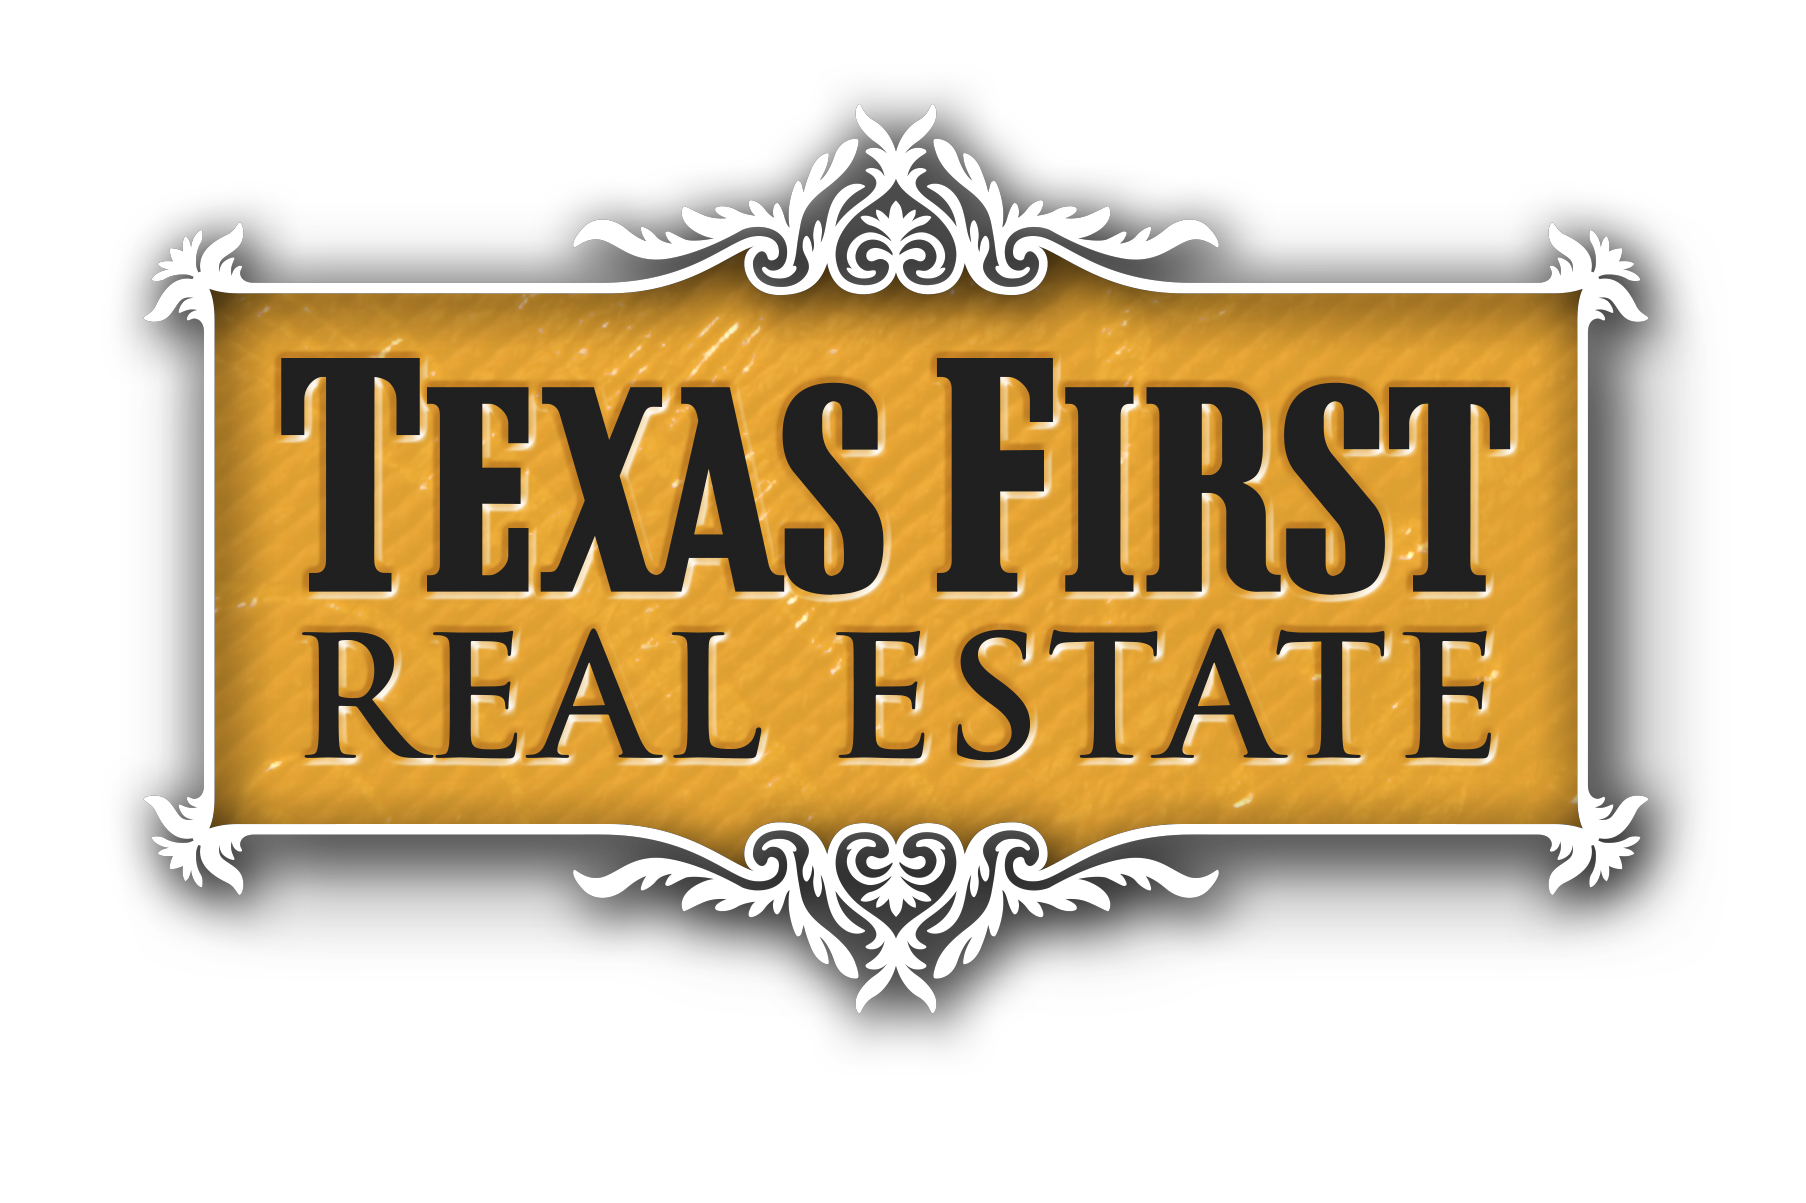 Texas First Real Estate